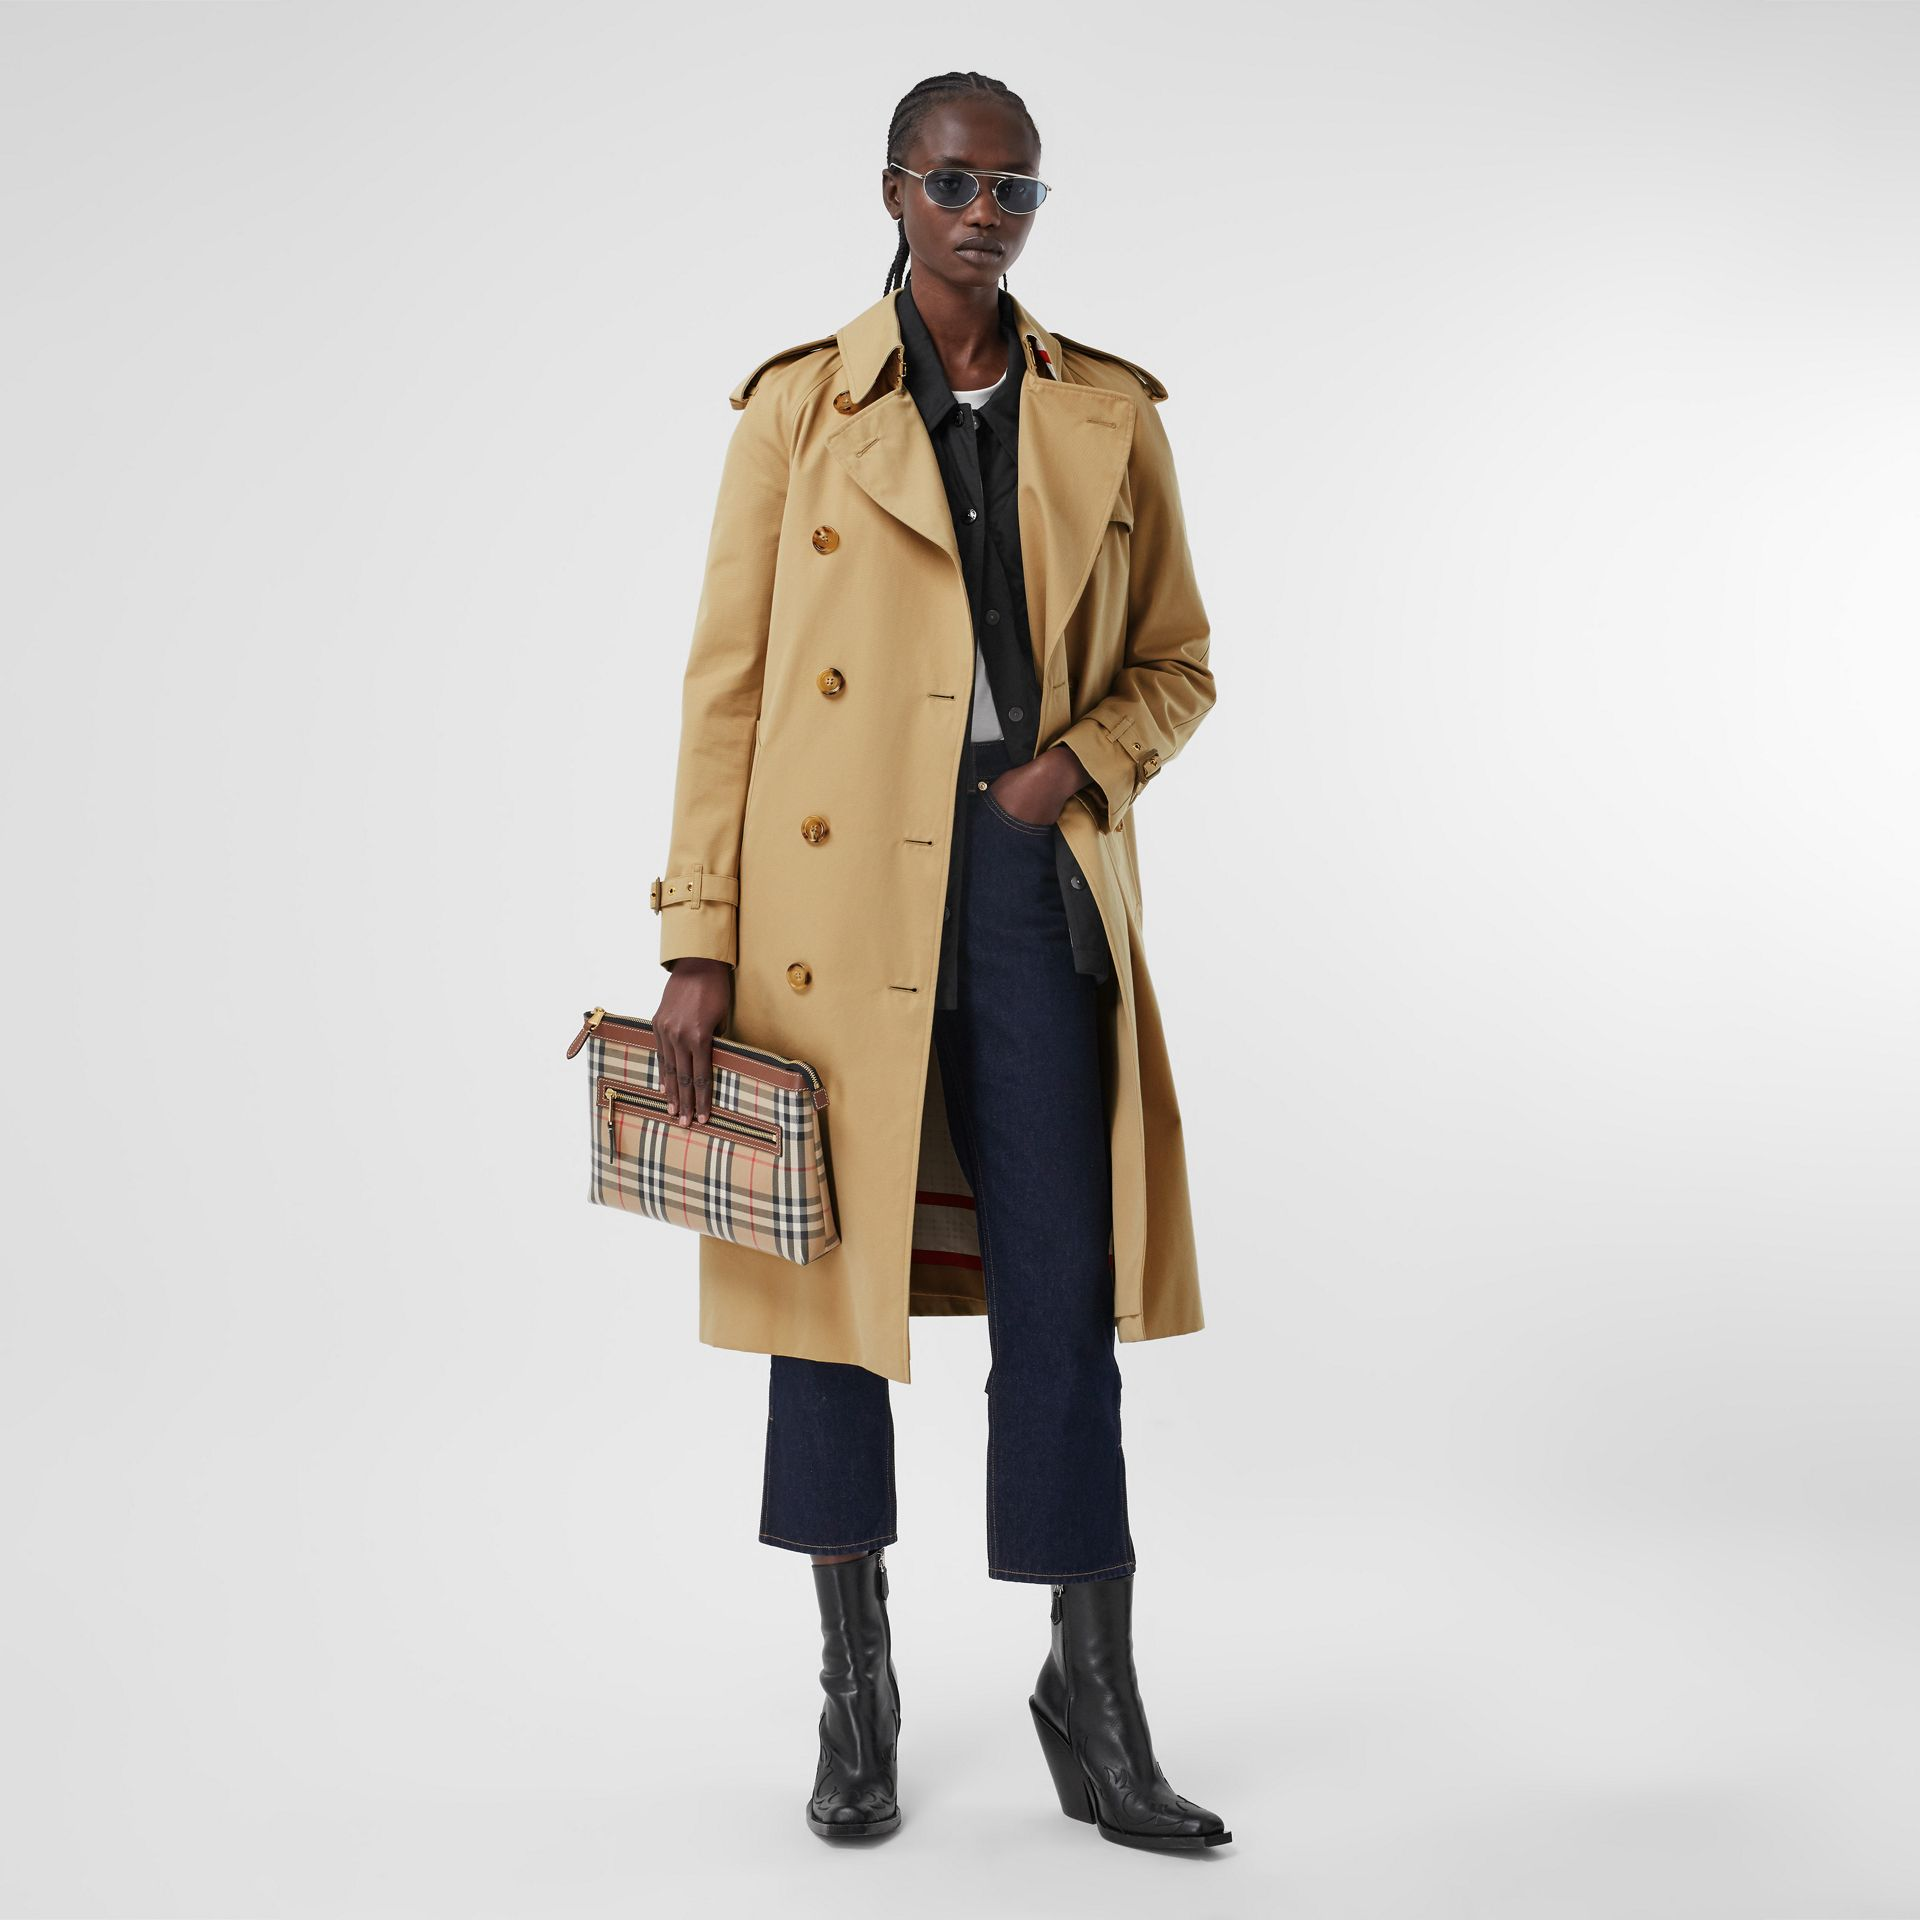 Archive Scarf Print-lined Trench Coat - Women | Burberry - gallery image 6